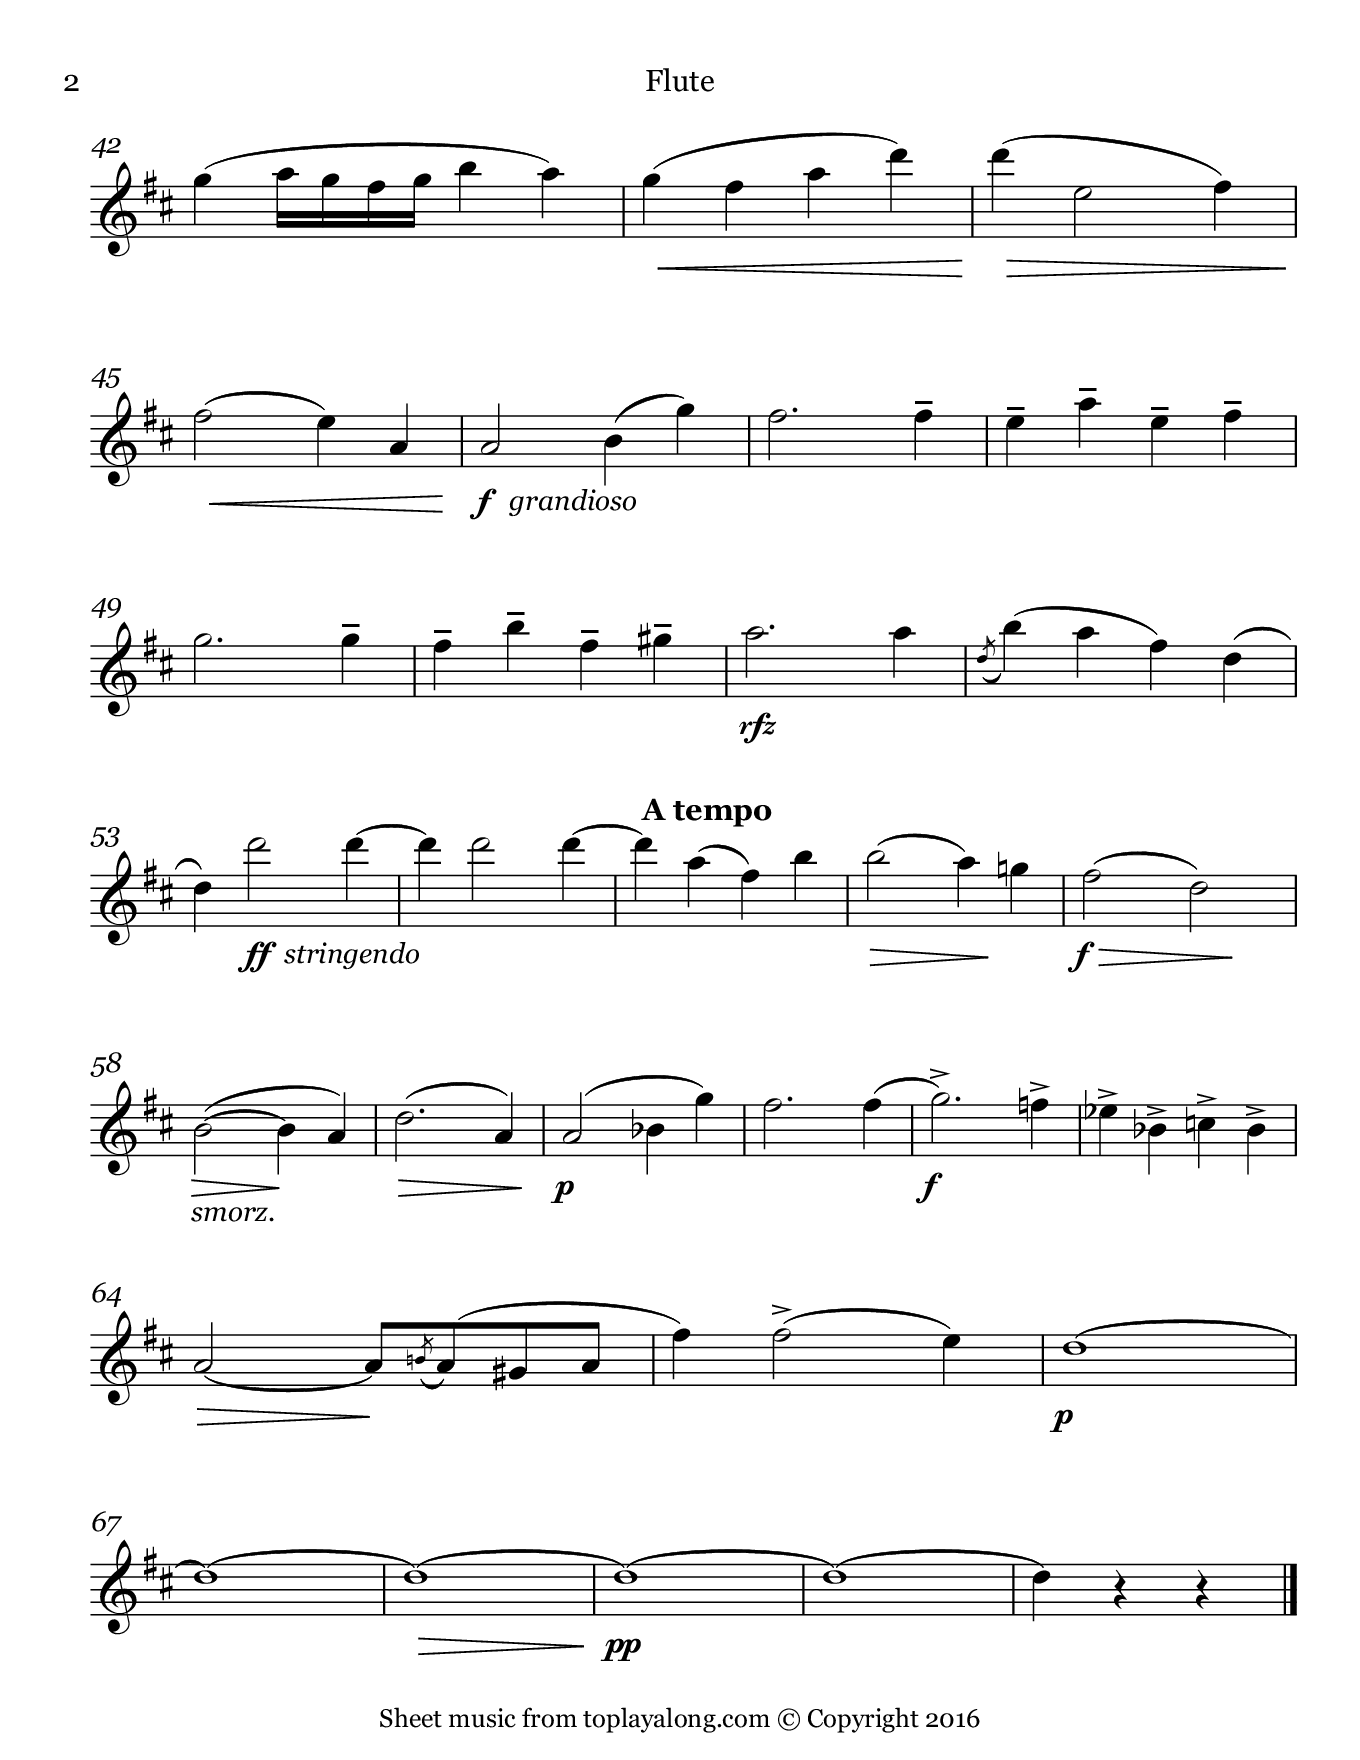 Cavatina by Raff. Sheet music for Flute, page 2.